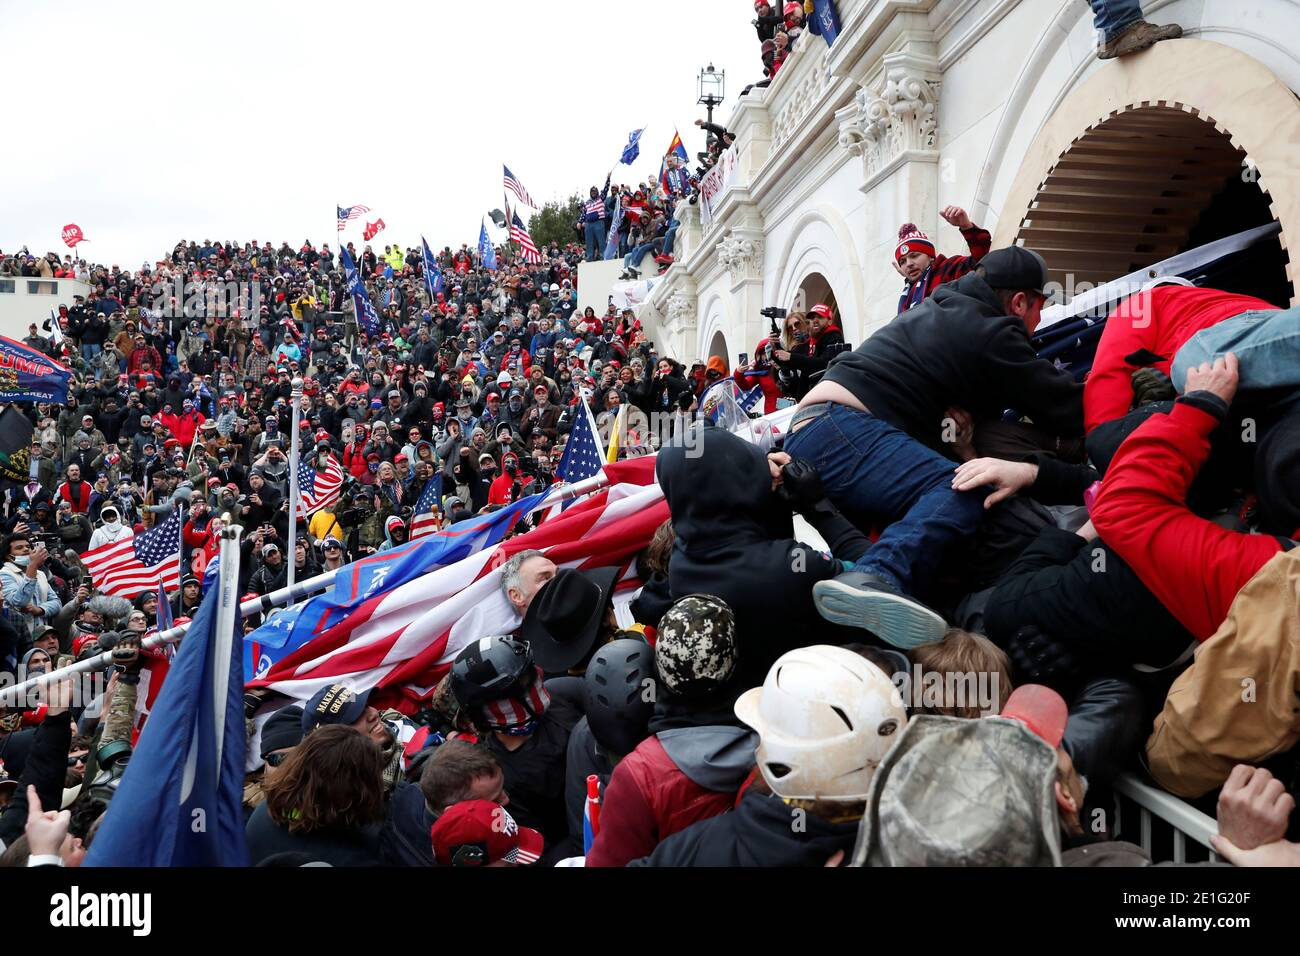 Pro-Trump protesters storm into the U.S. Capitol during clashes with police, during a rally to contest the certification of the 2020 U.S. presidential election results by the U.S. Congress, in Washington, U.S, January 6, 2021. REUTERS/Shannon Stapleton Stock Photo